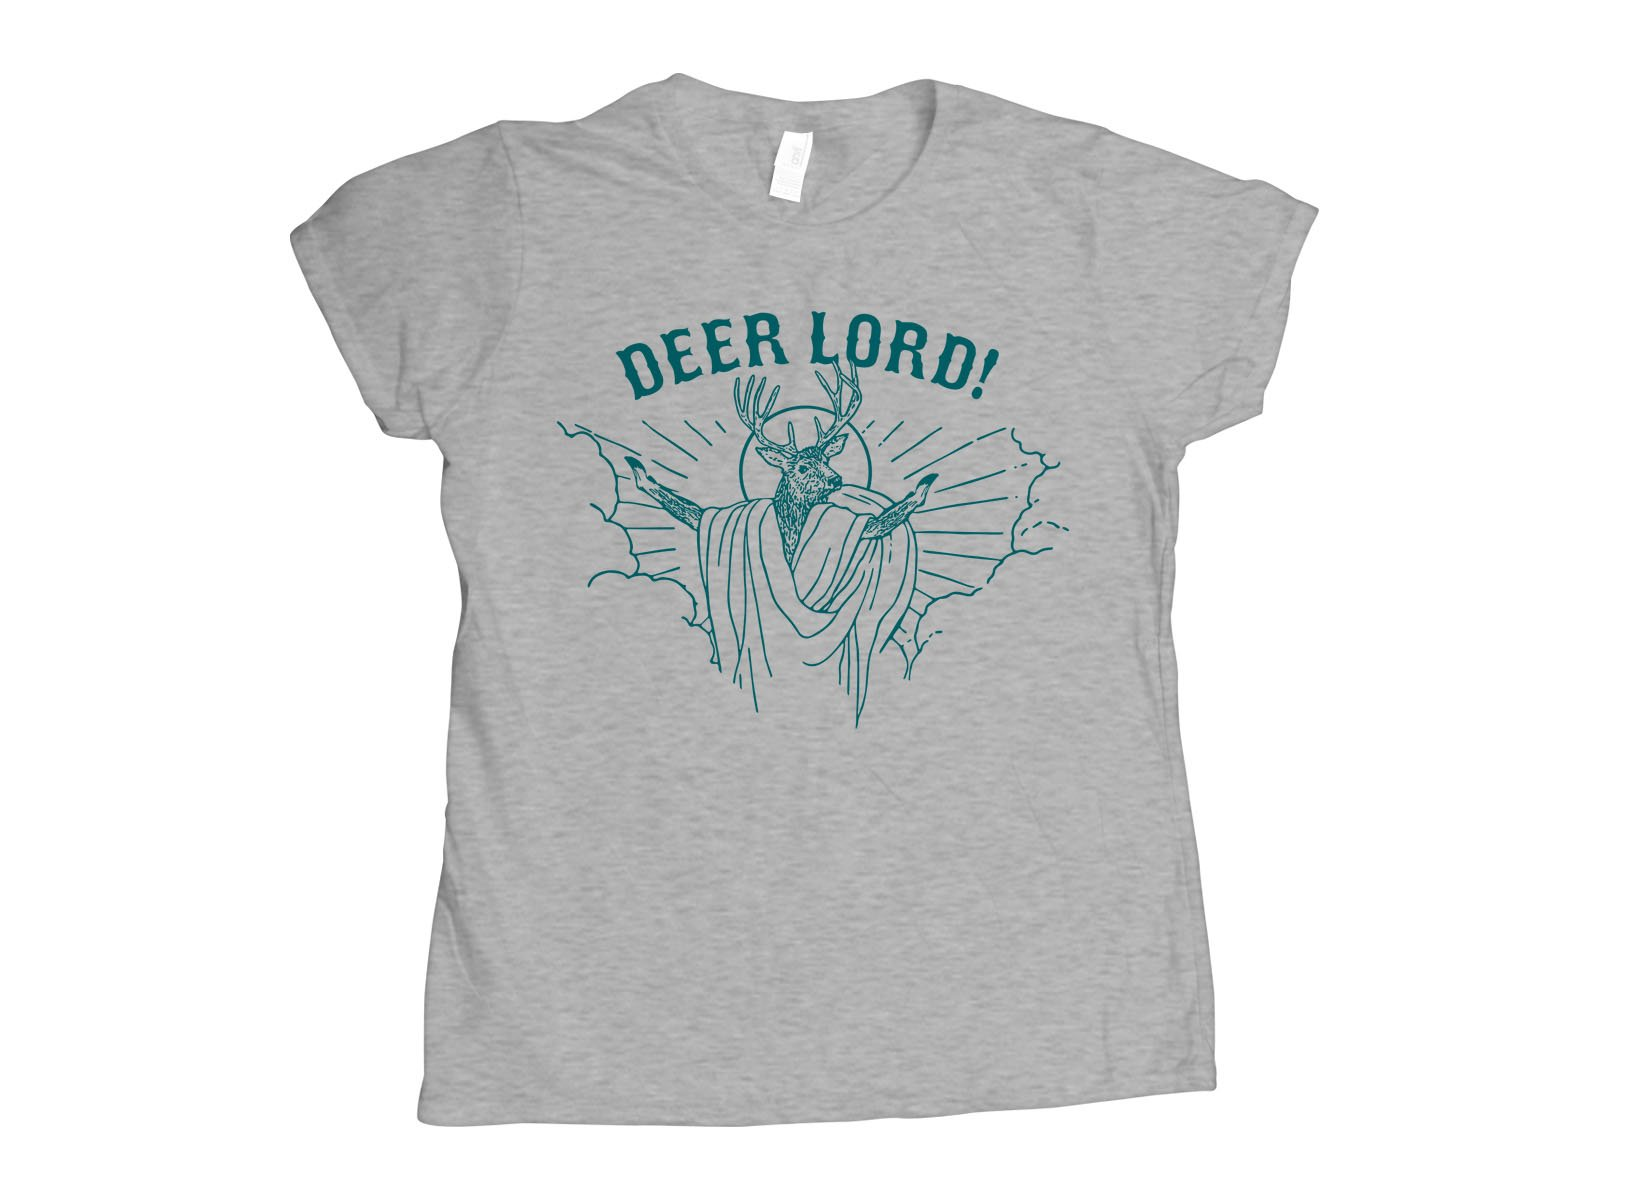 Deer Lord on Womens T-Shirt